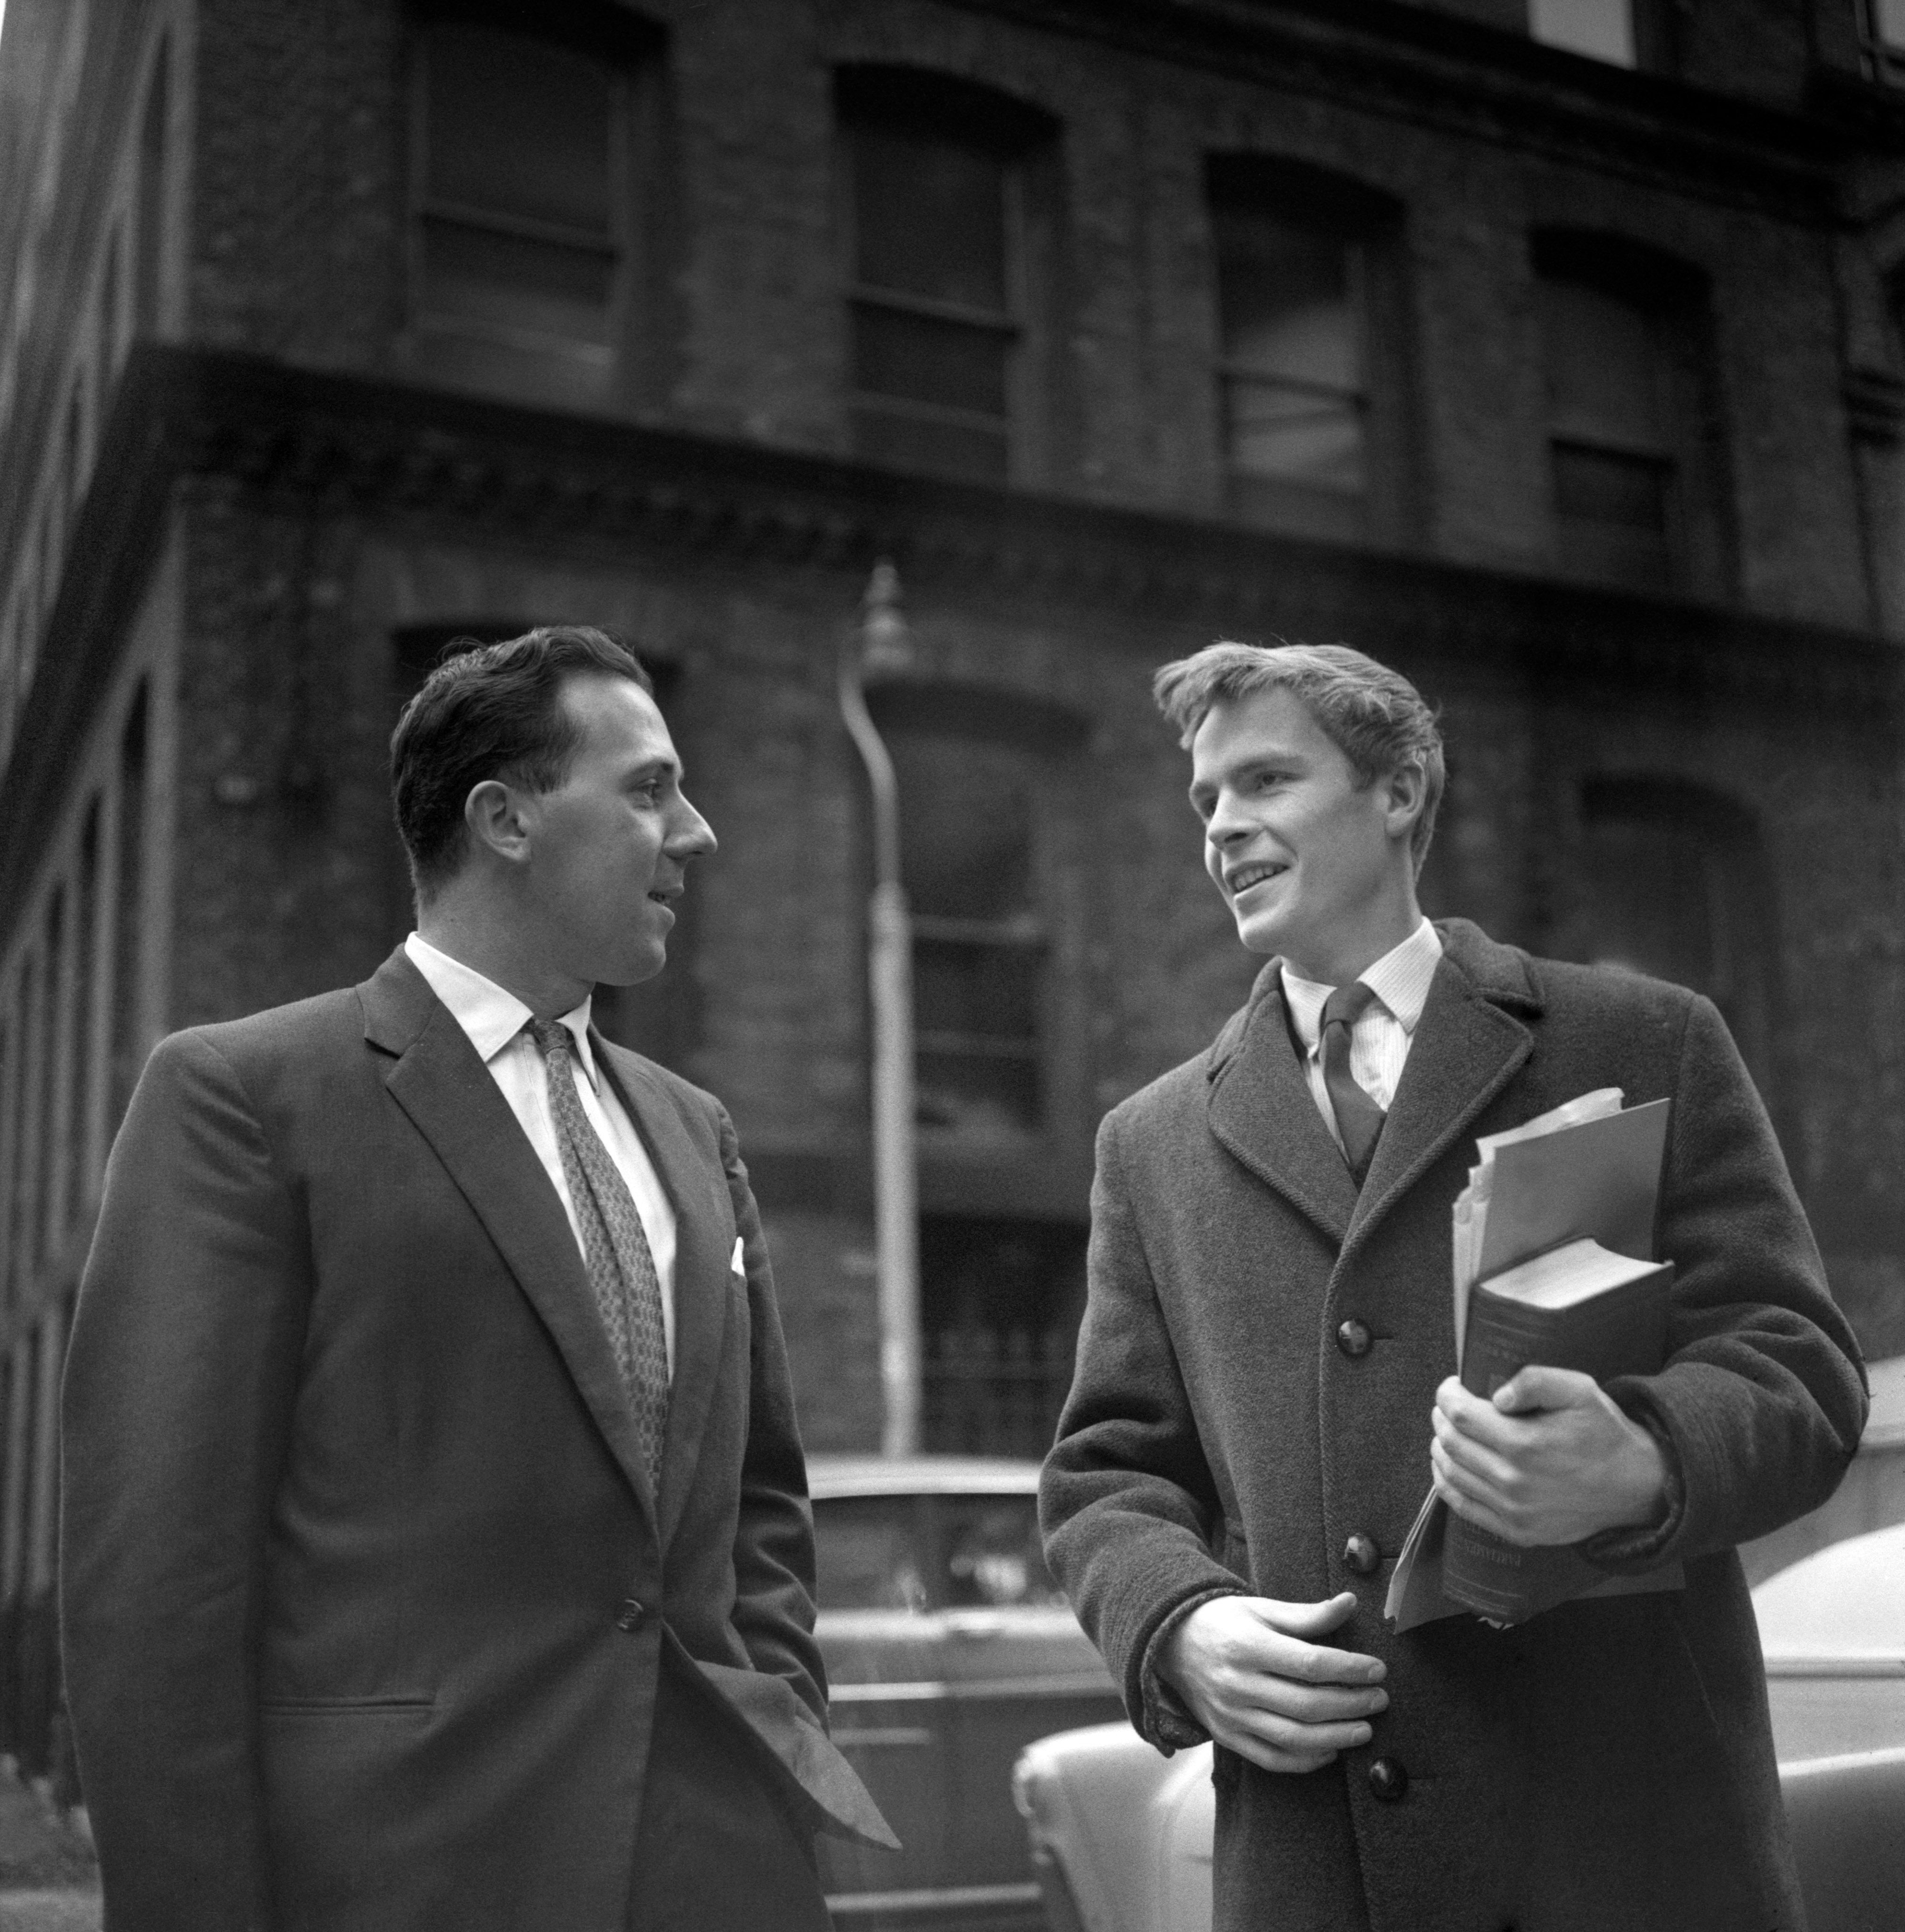 Union Movement candidate Walter Hesketh (left) pictured with his agent Max Mosley in 1961 after the Manchester Moss Side election